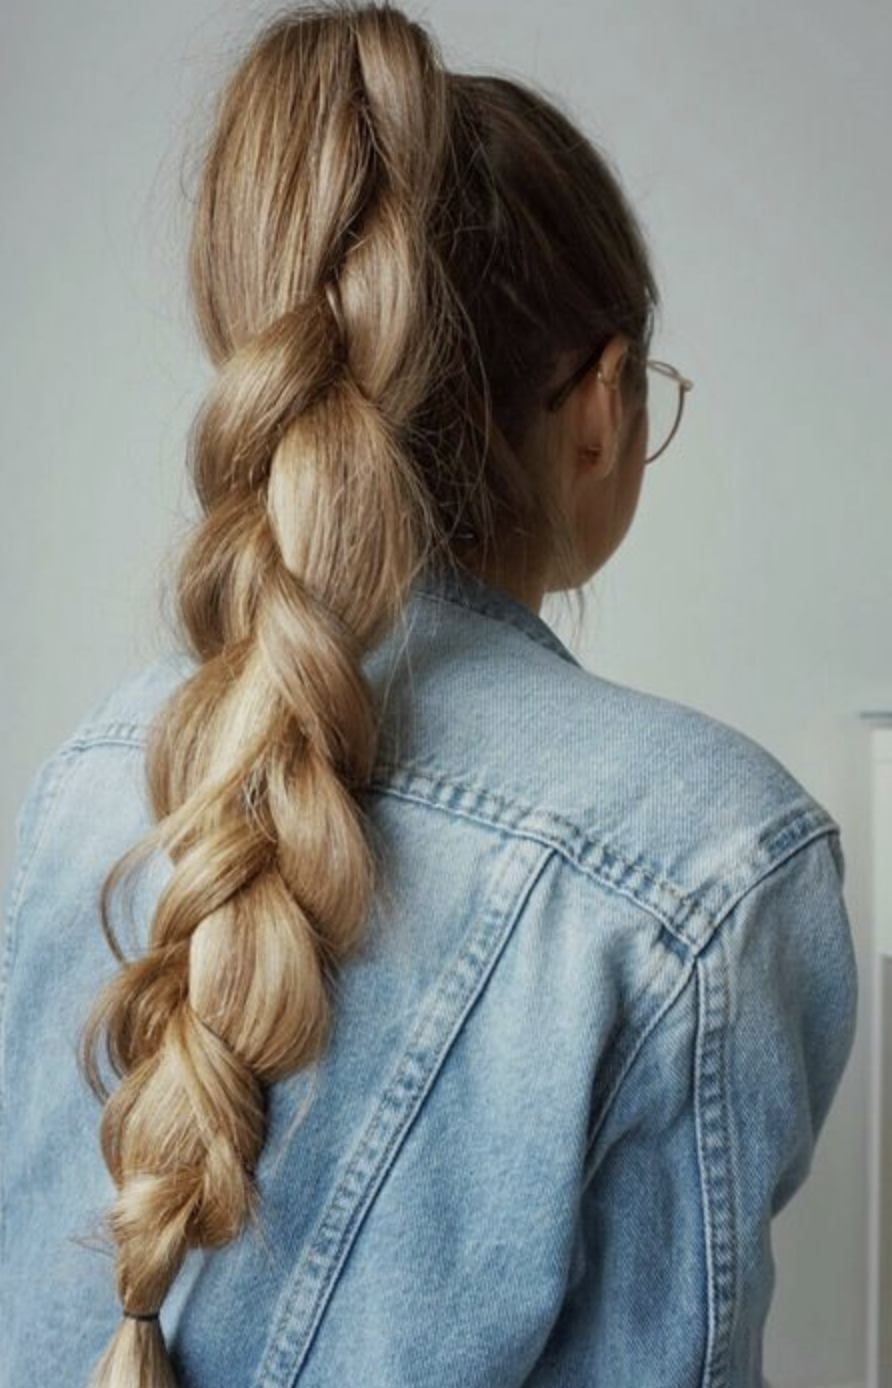 School Hairstyle: High 3 Strand Braid, Neat And Cute This Pertaining To Famous Three Strand Pigtails Braided Hairstyles (View 18 of 20)